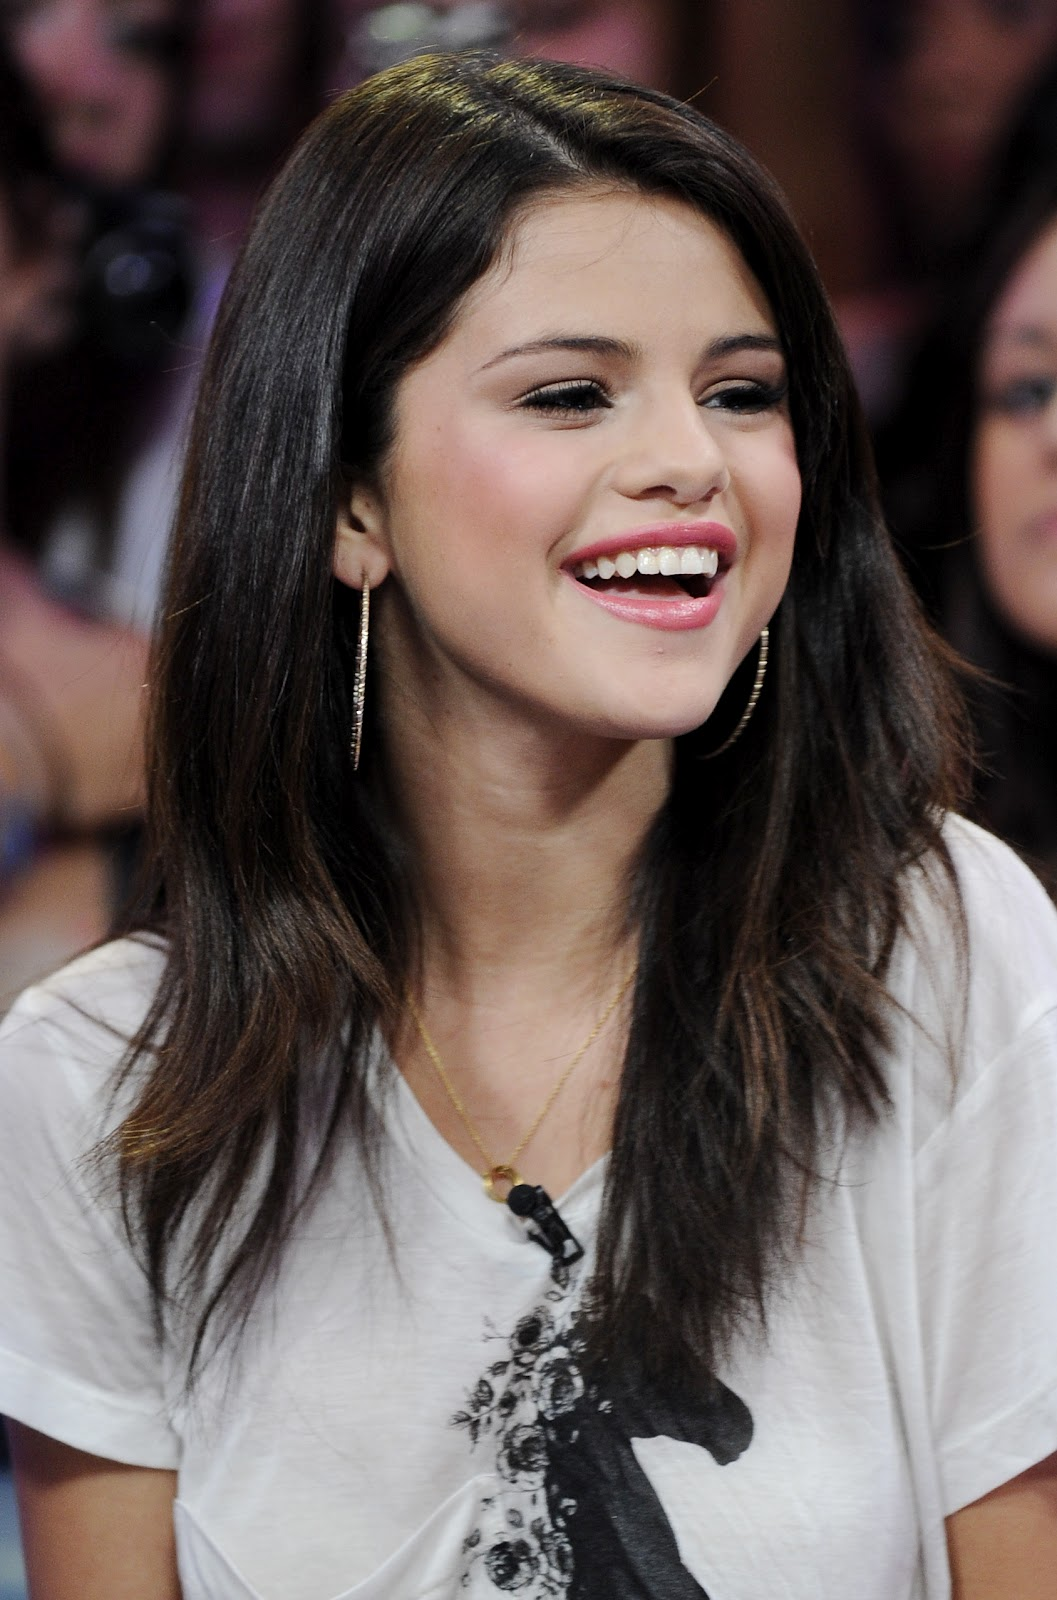 Selena Gomez Wallpapers and Pictures 2012: Selena Gomez ...